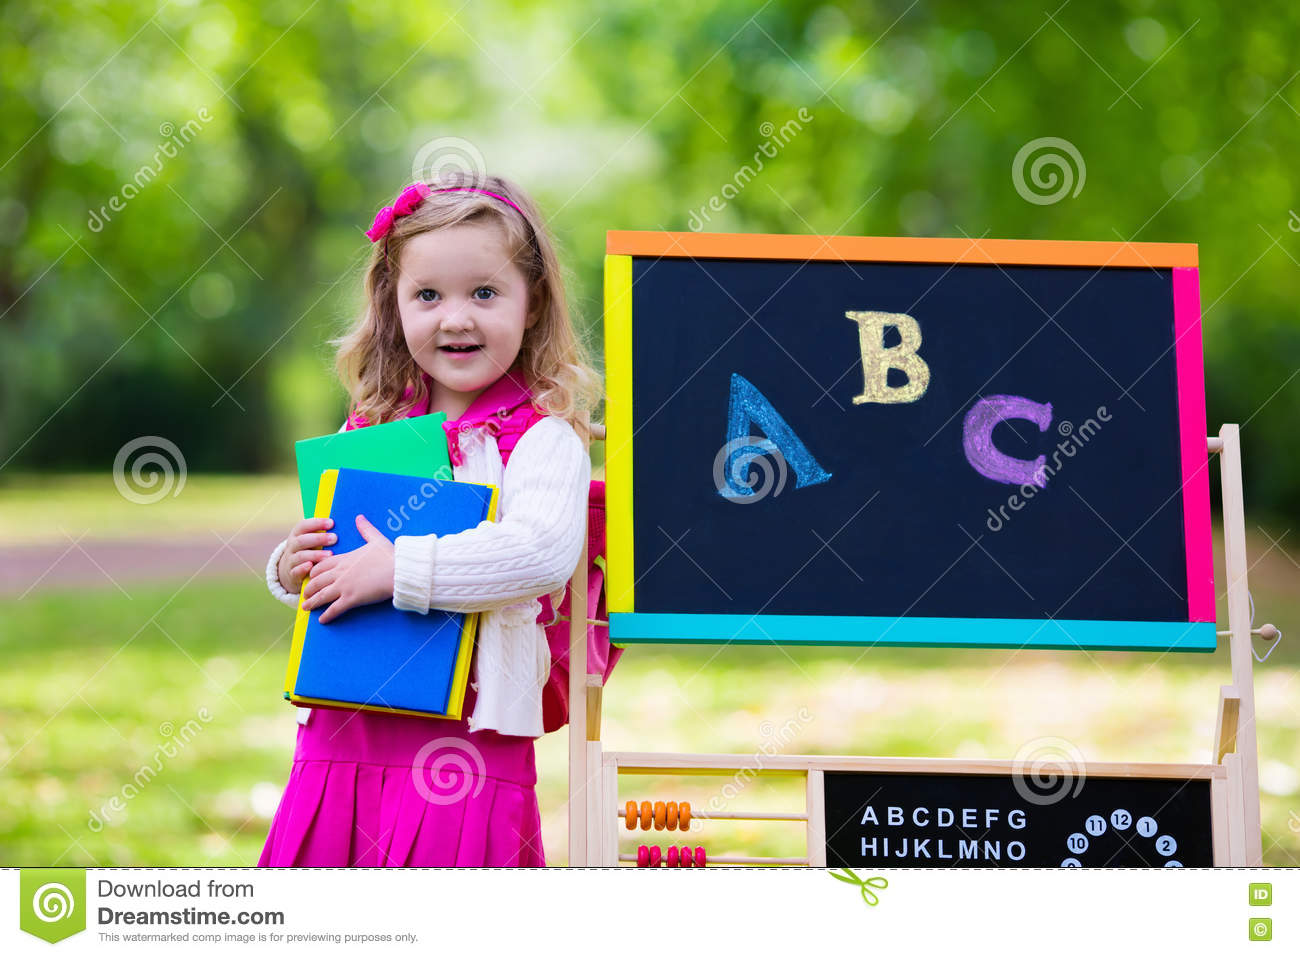 as a young child in school While 8 years old seems like a young age to live away from home to some americans, in many cultures it is a celebrated coming of age moment for young children to attend boarding school some boarding schools even offer programs for kindergarten-age children.